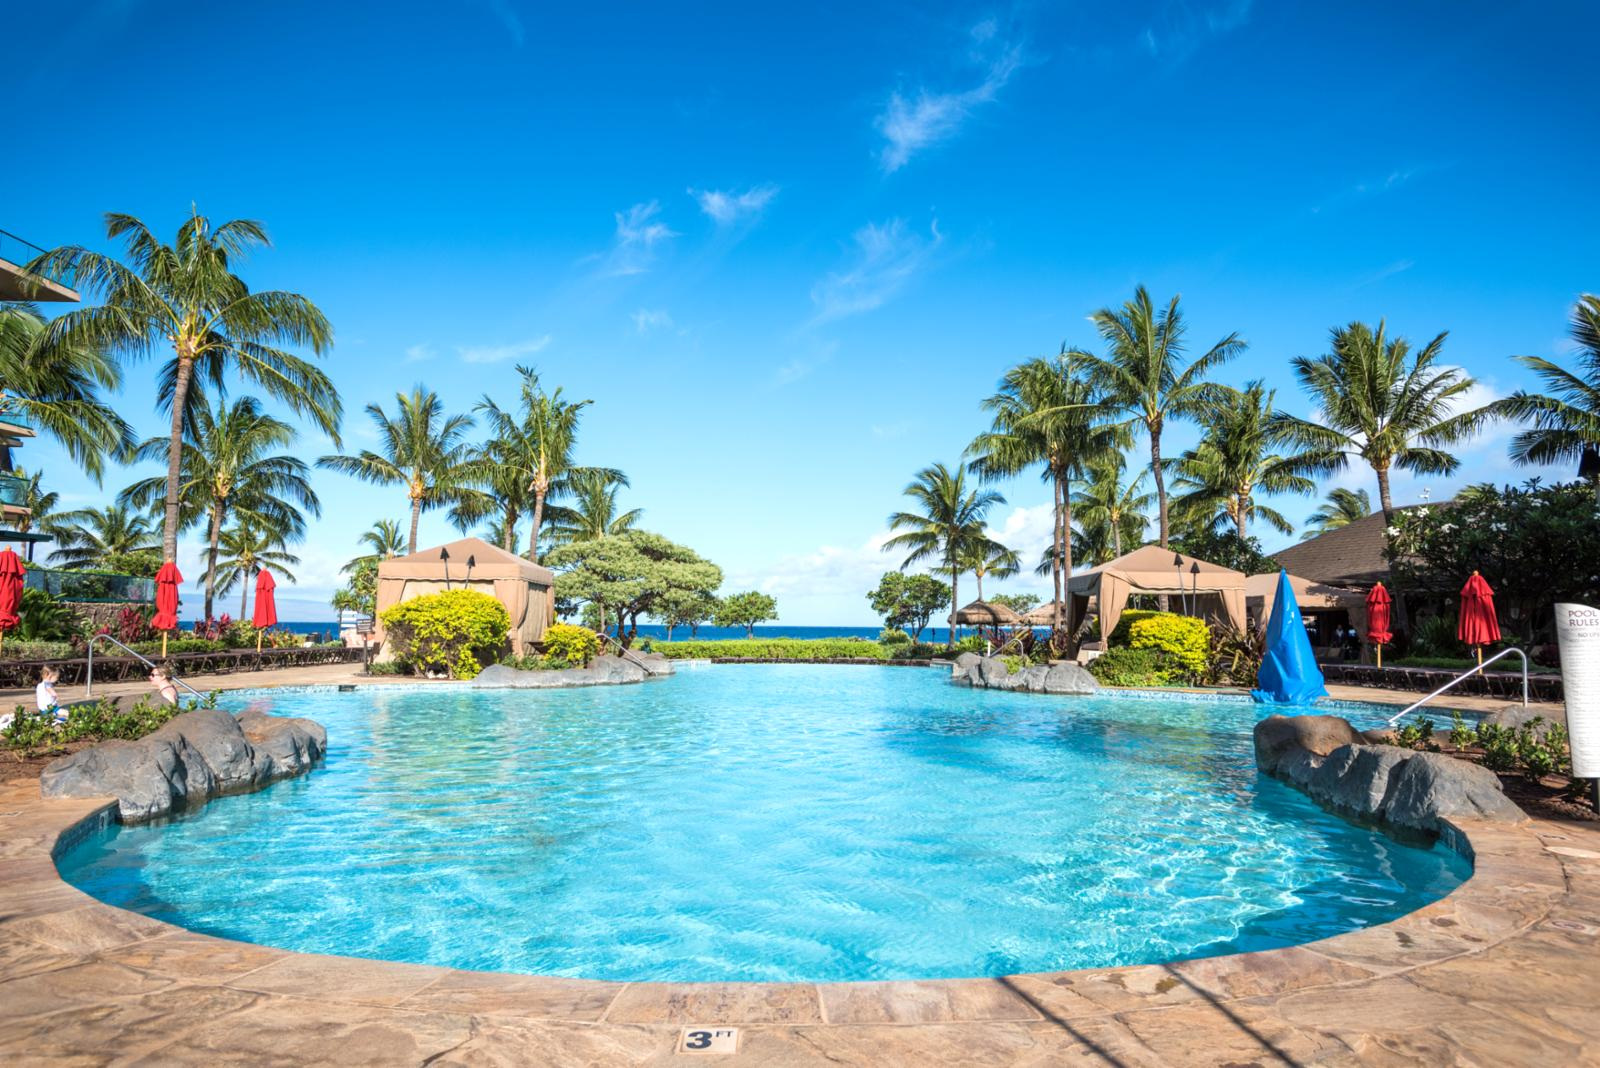 One of many pools here at Honua Kai